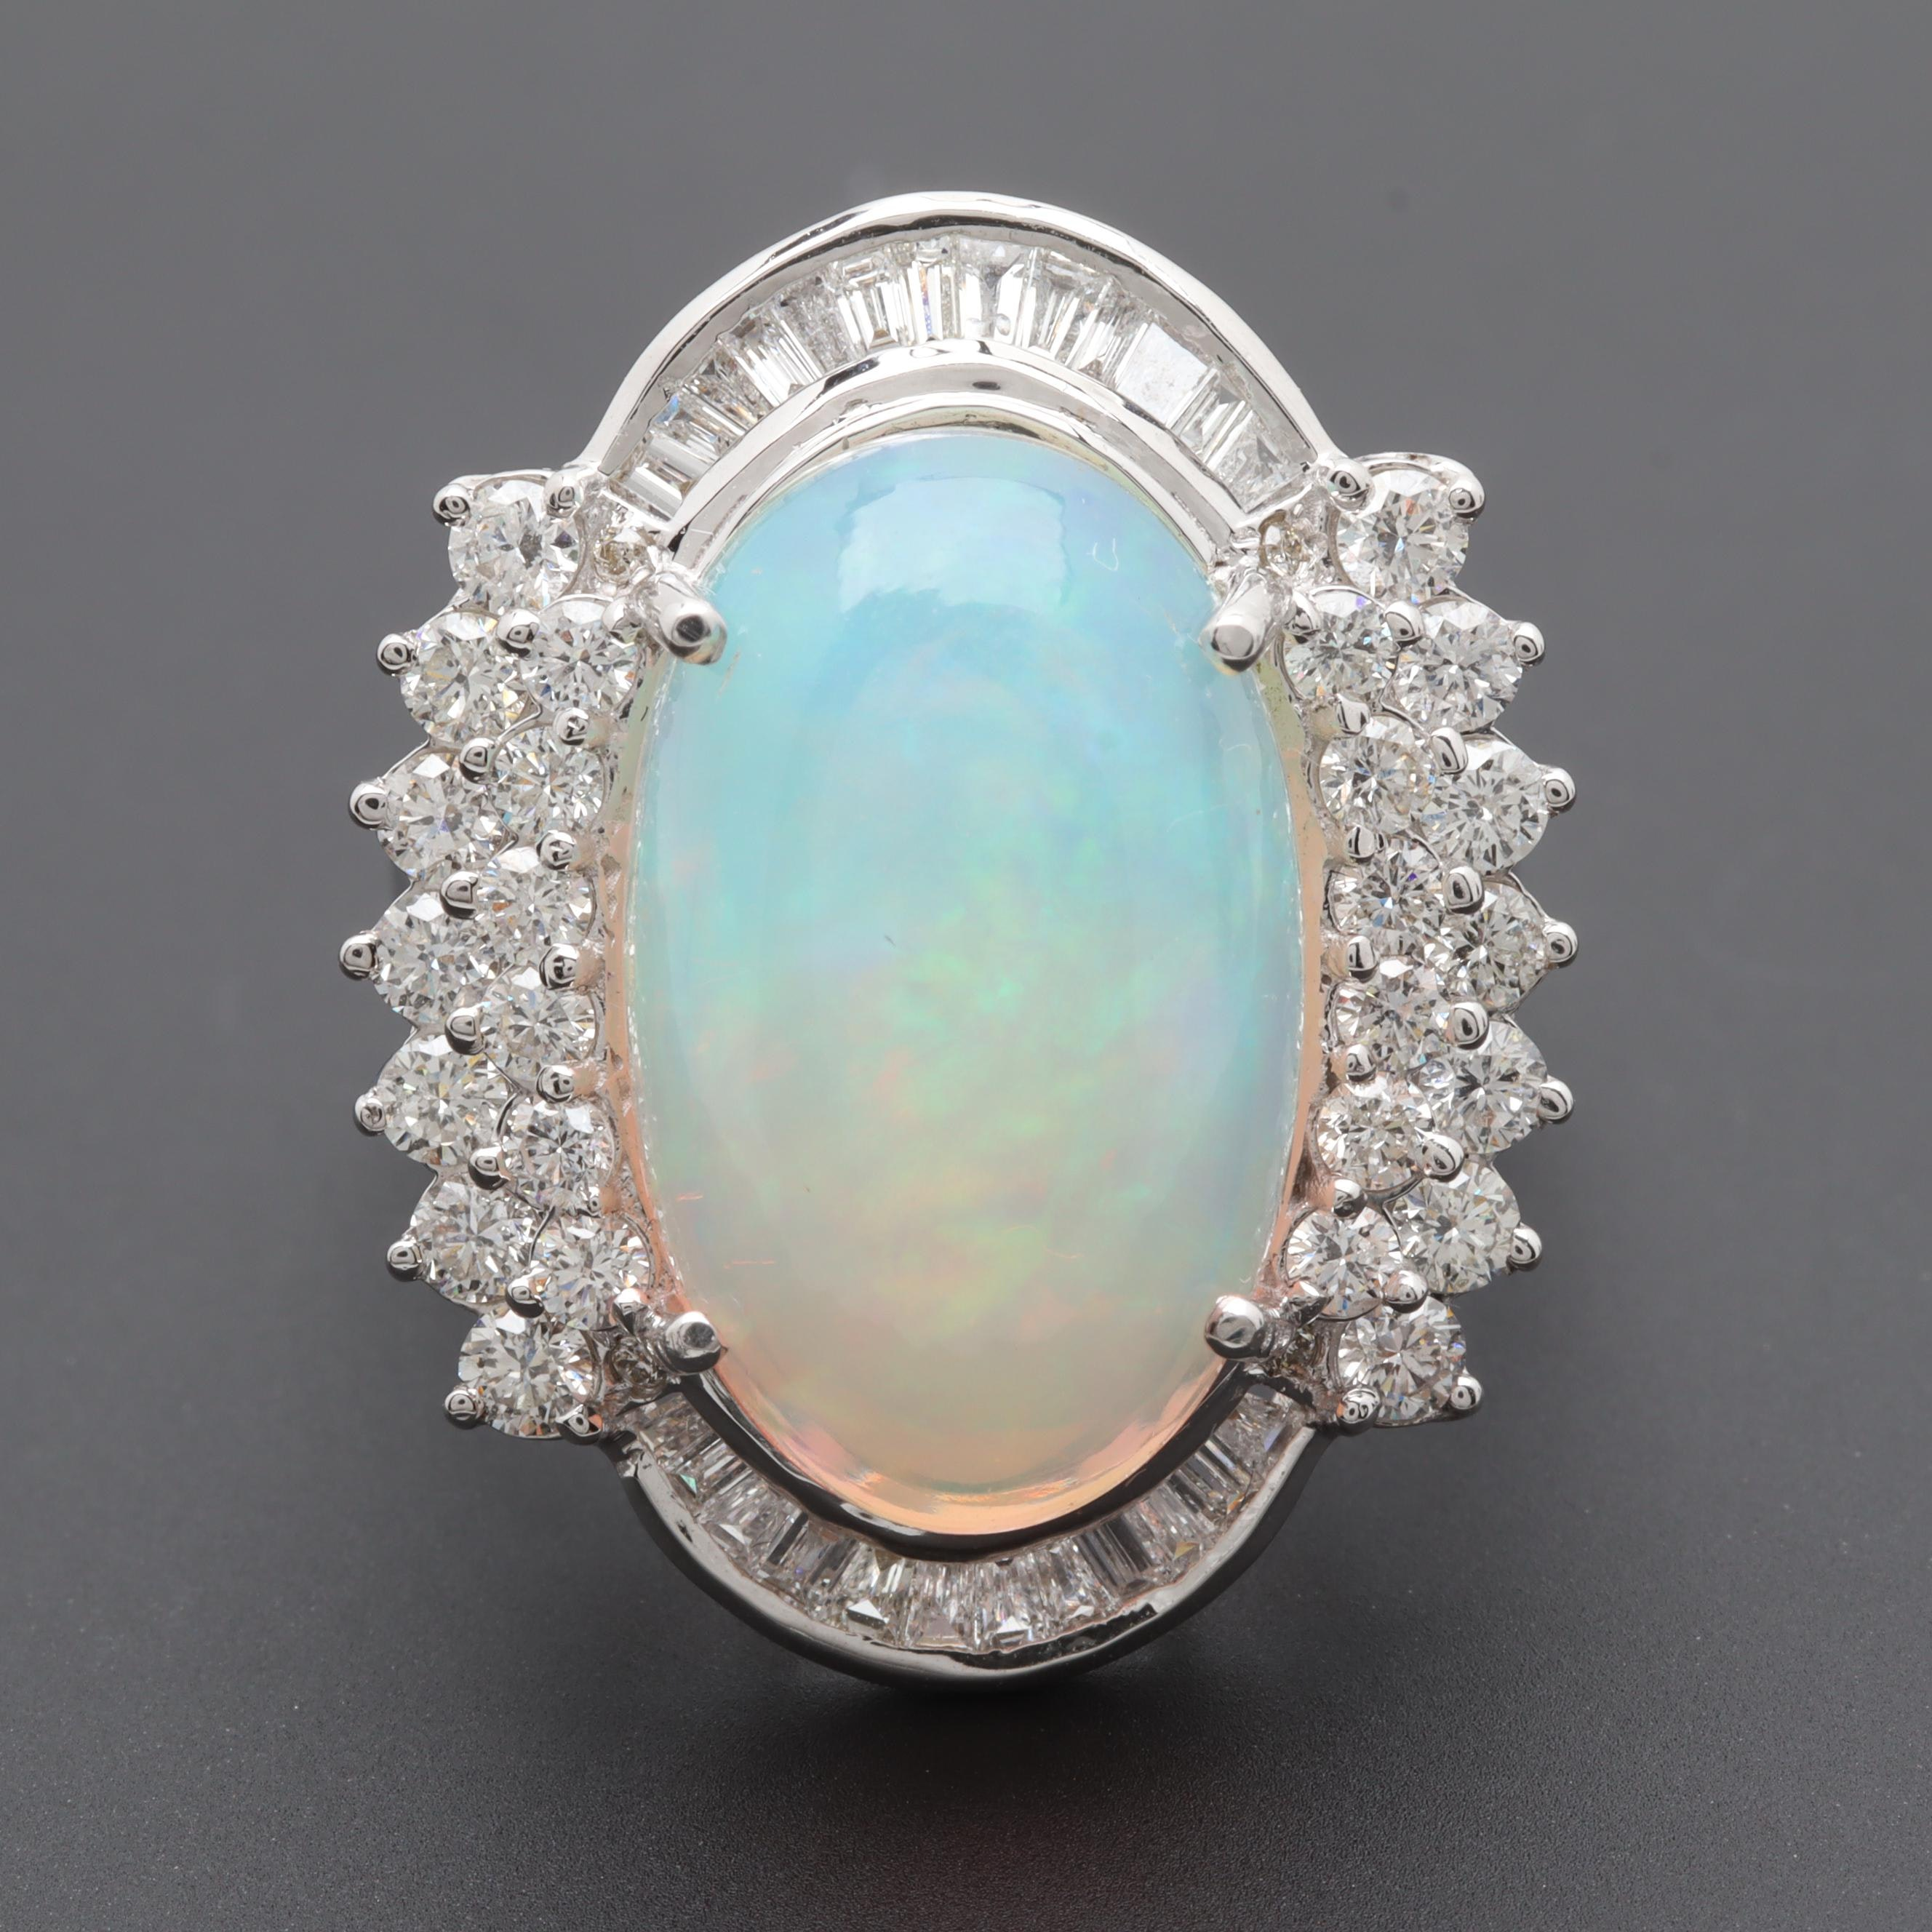 18K White Gold 10.82 CT Jelly Opal and 1.97 CTW Diamond Ring